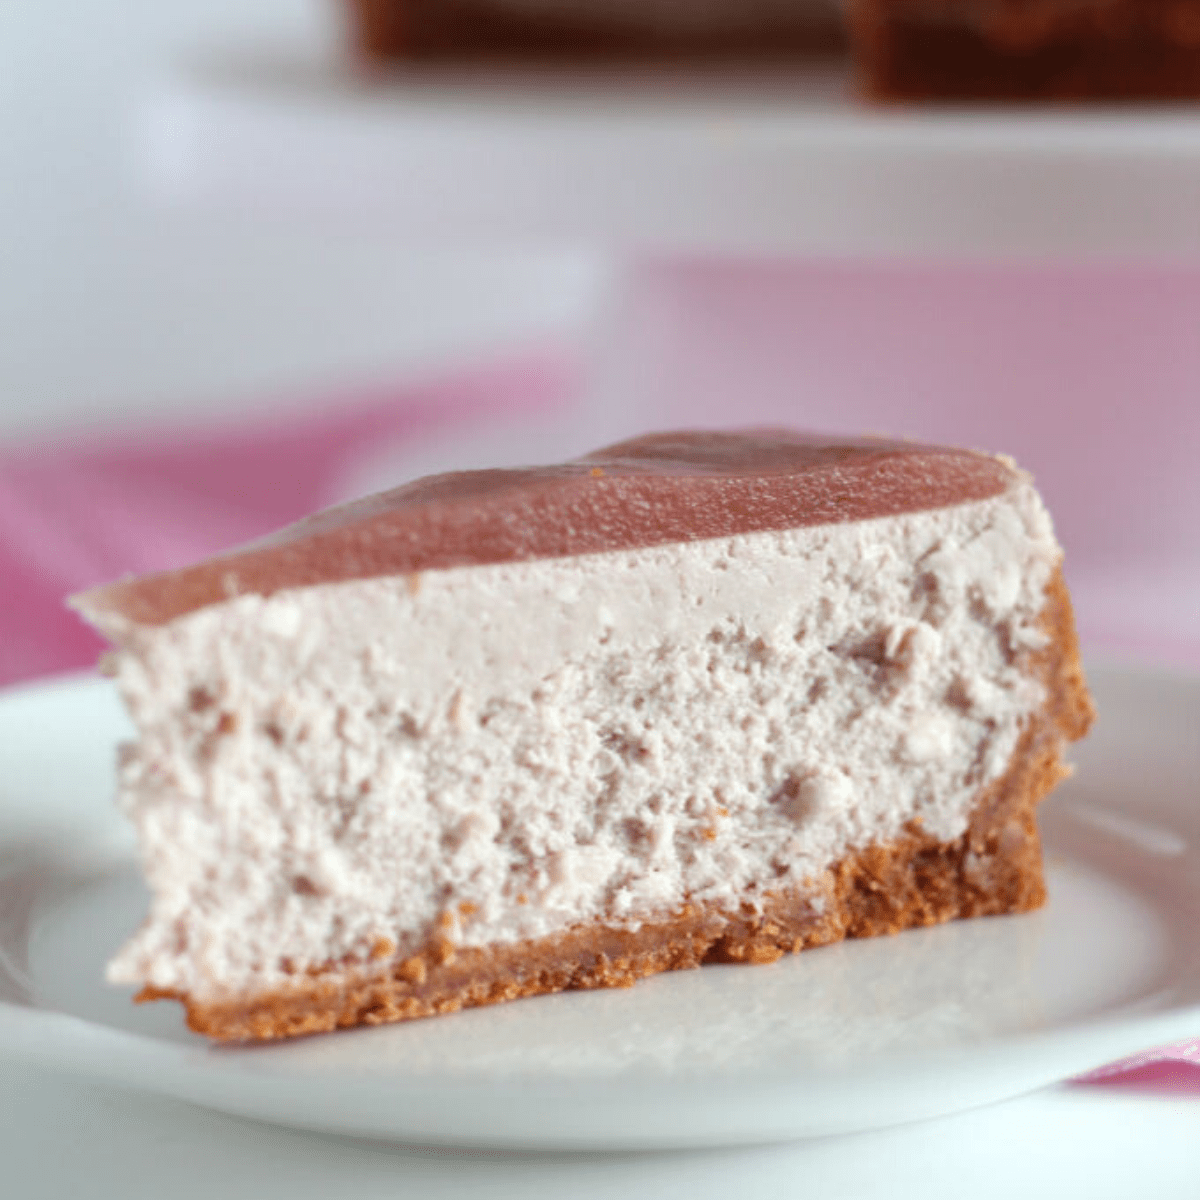 A slice of cheesecake on a plate.